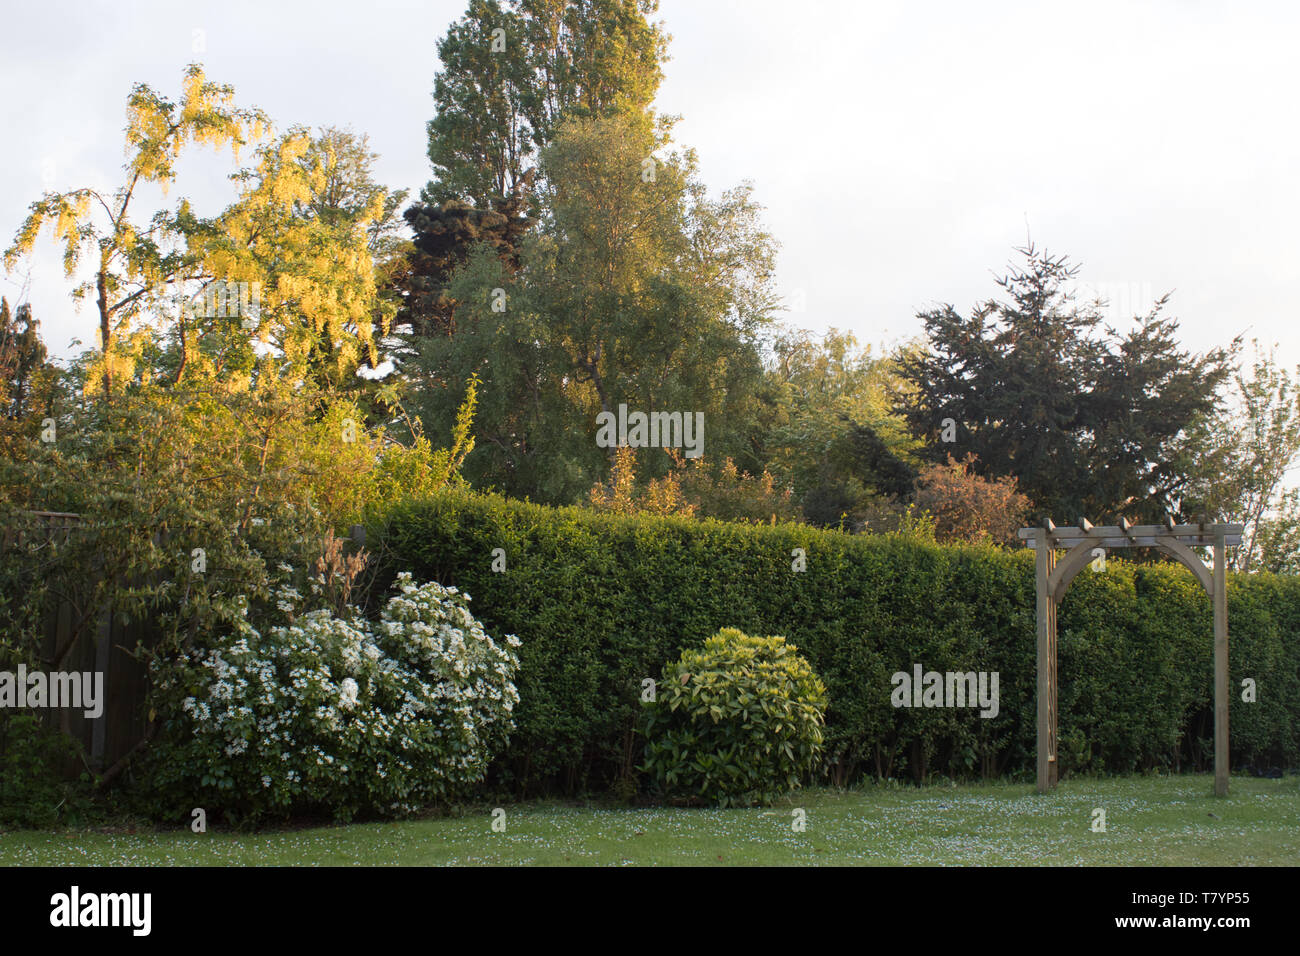 Shrubs Hedge And Trees In An English Garden Stock Photo